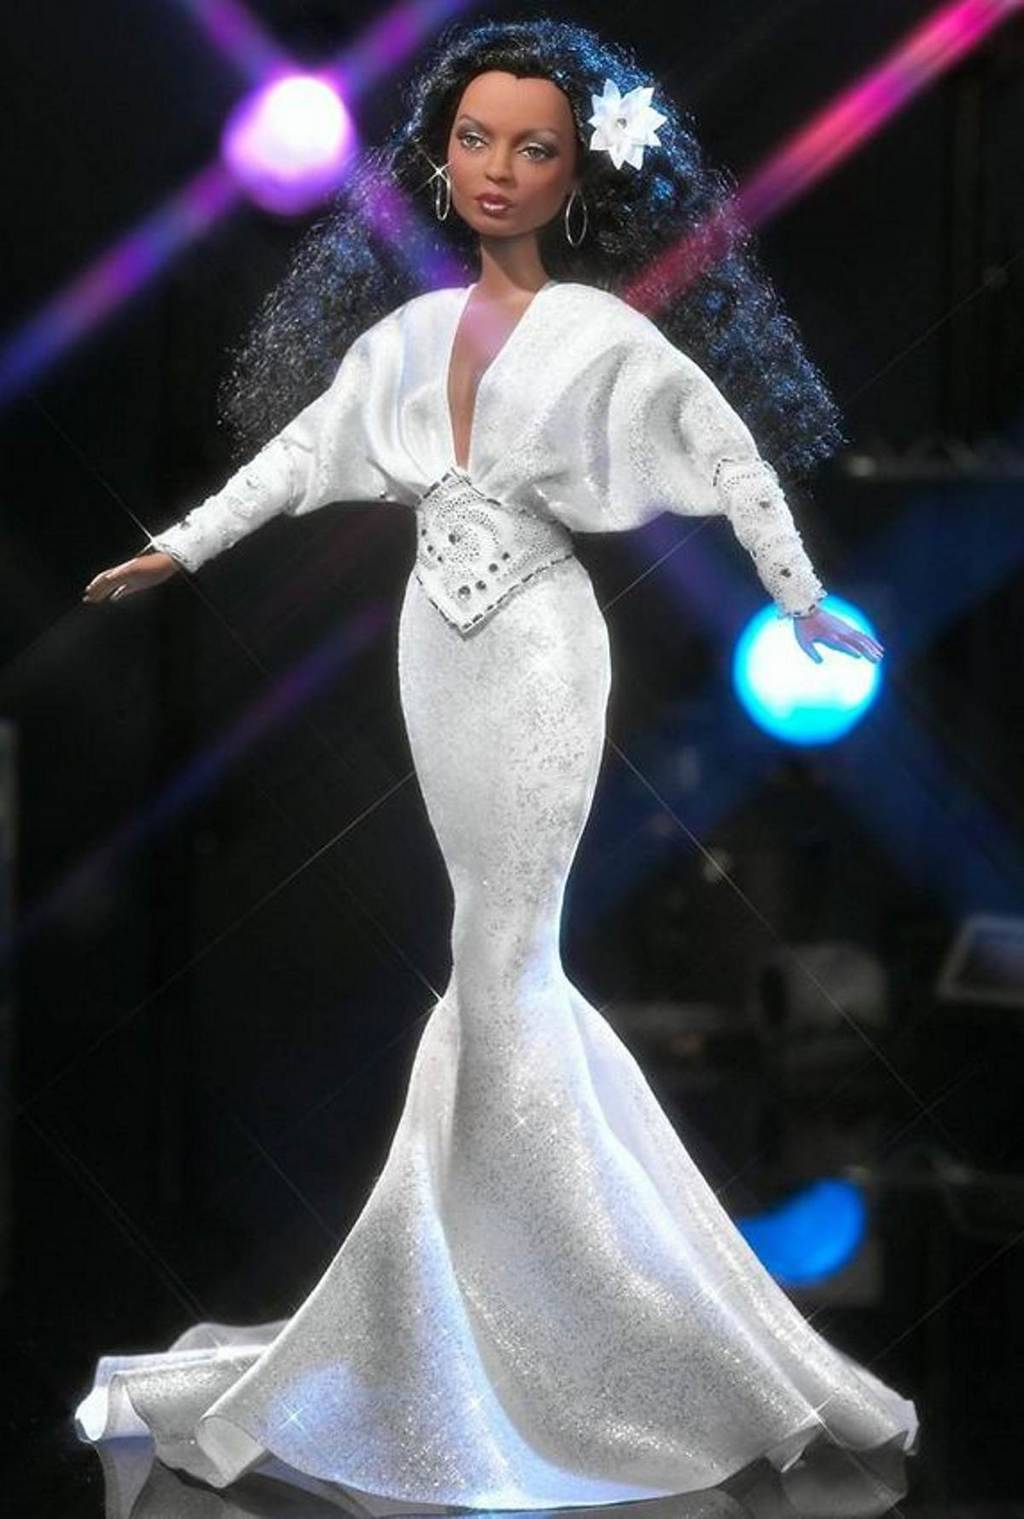 What Diana Ross Barbie